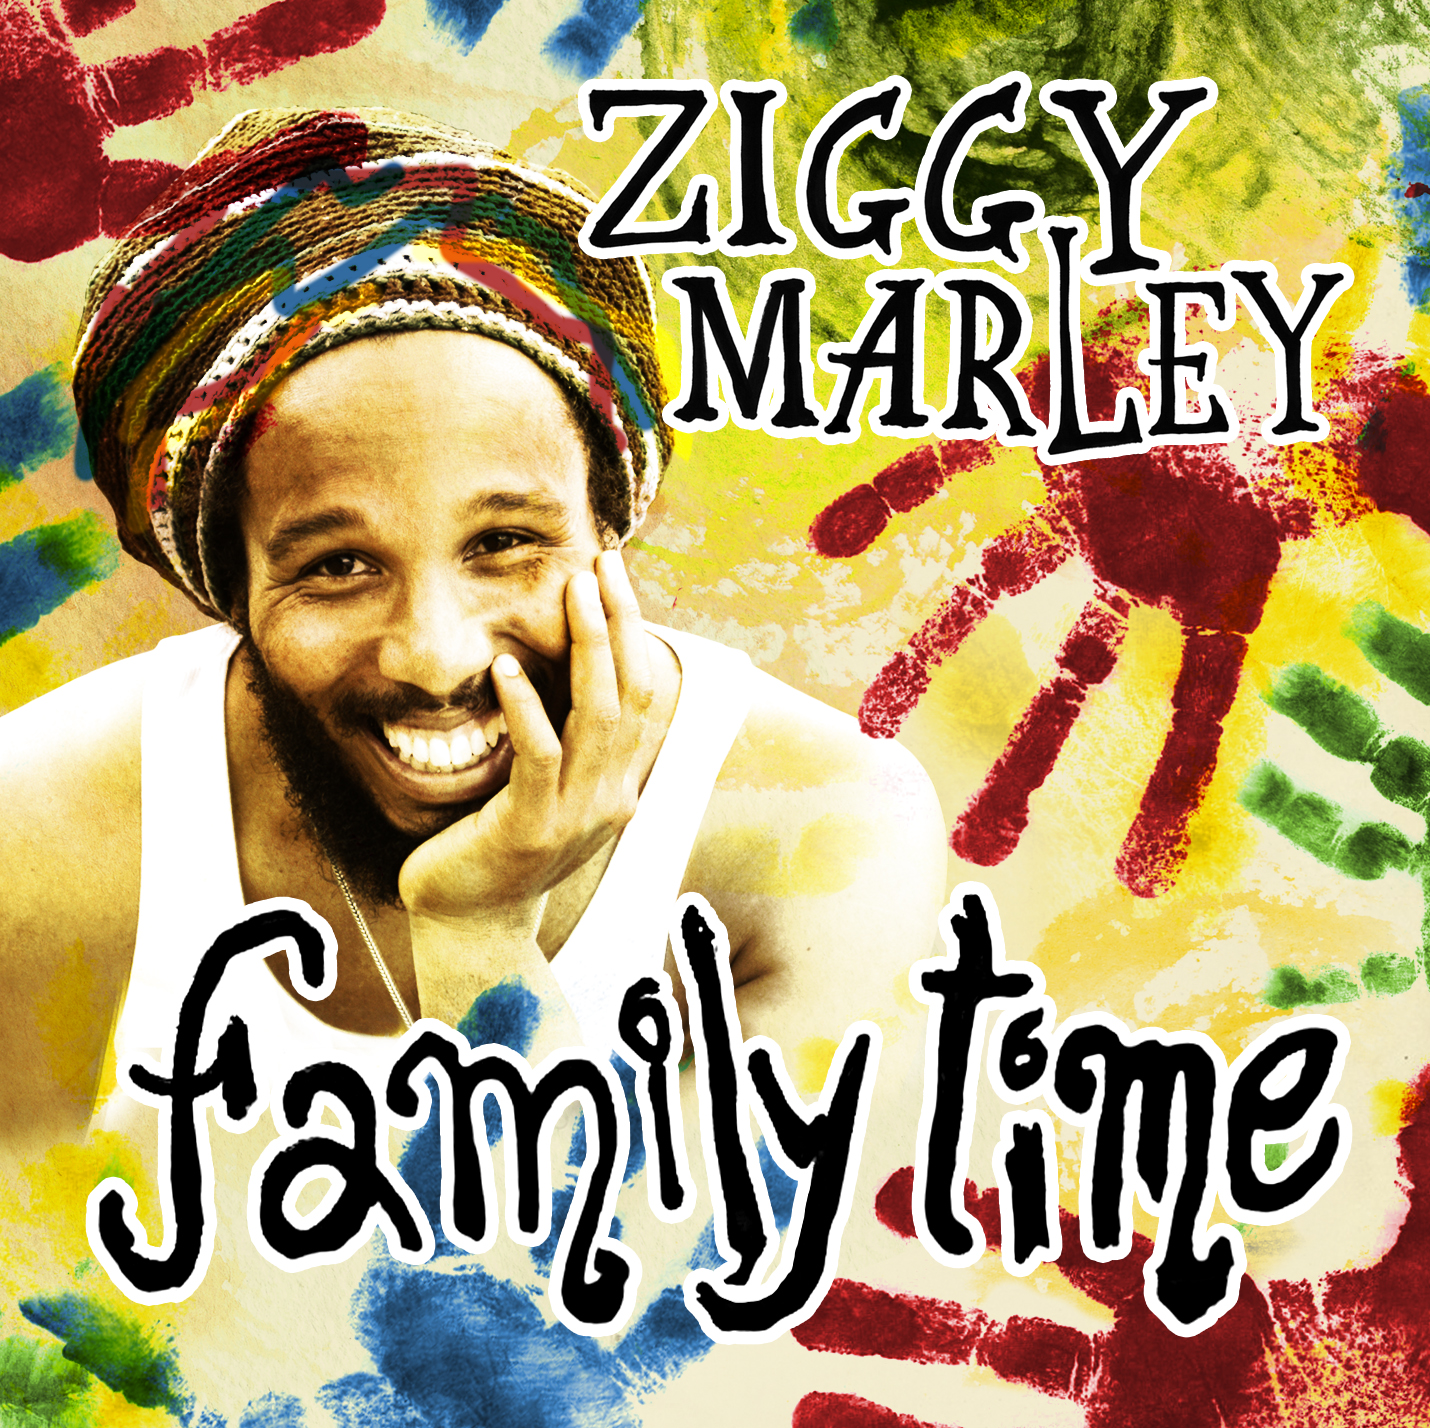 Ziggy Marley Family Time CD GiveawayZiggy Marley Family Time